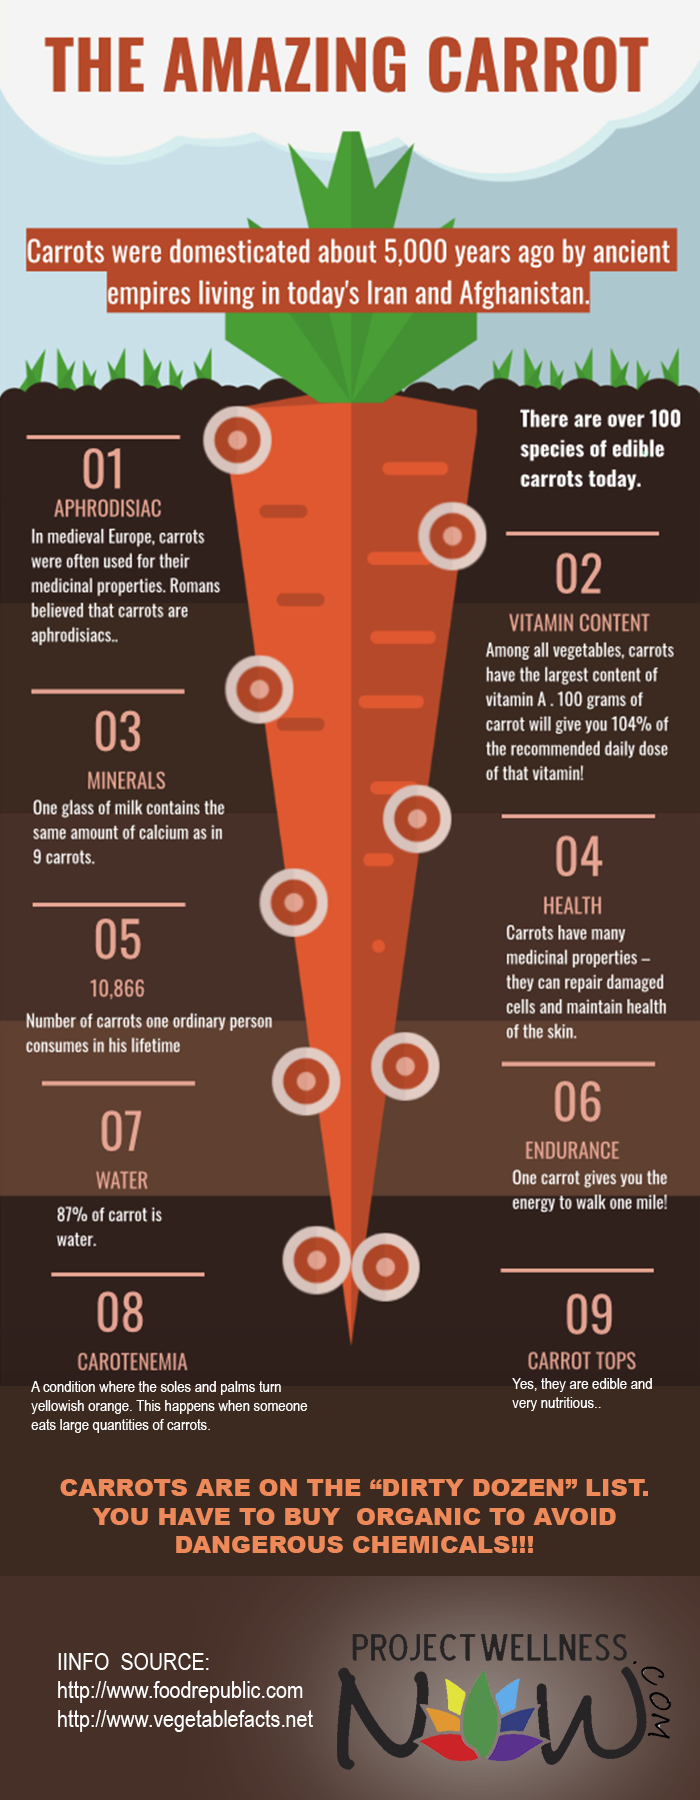 9 Strong Reasons to Eat Carrots Regularly - Infographic